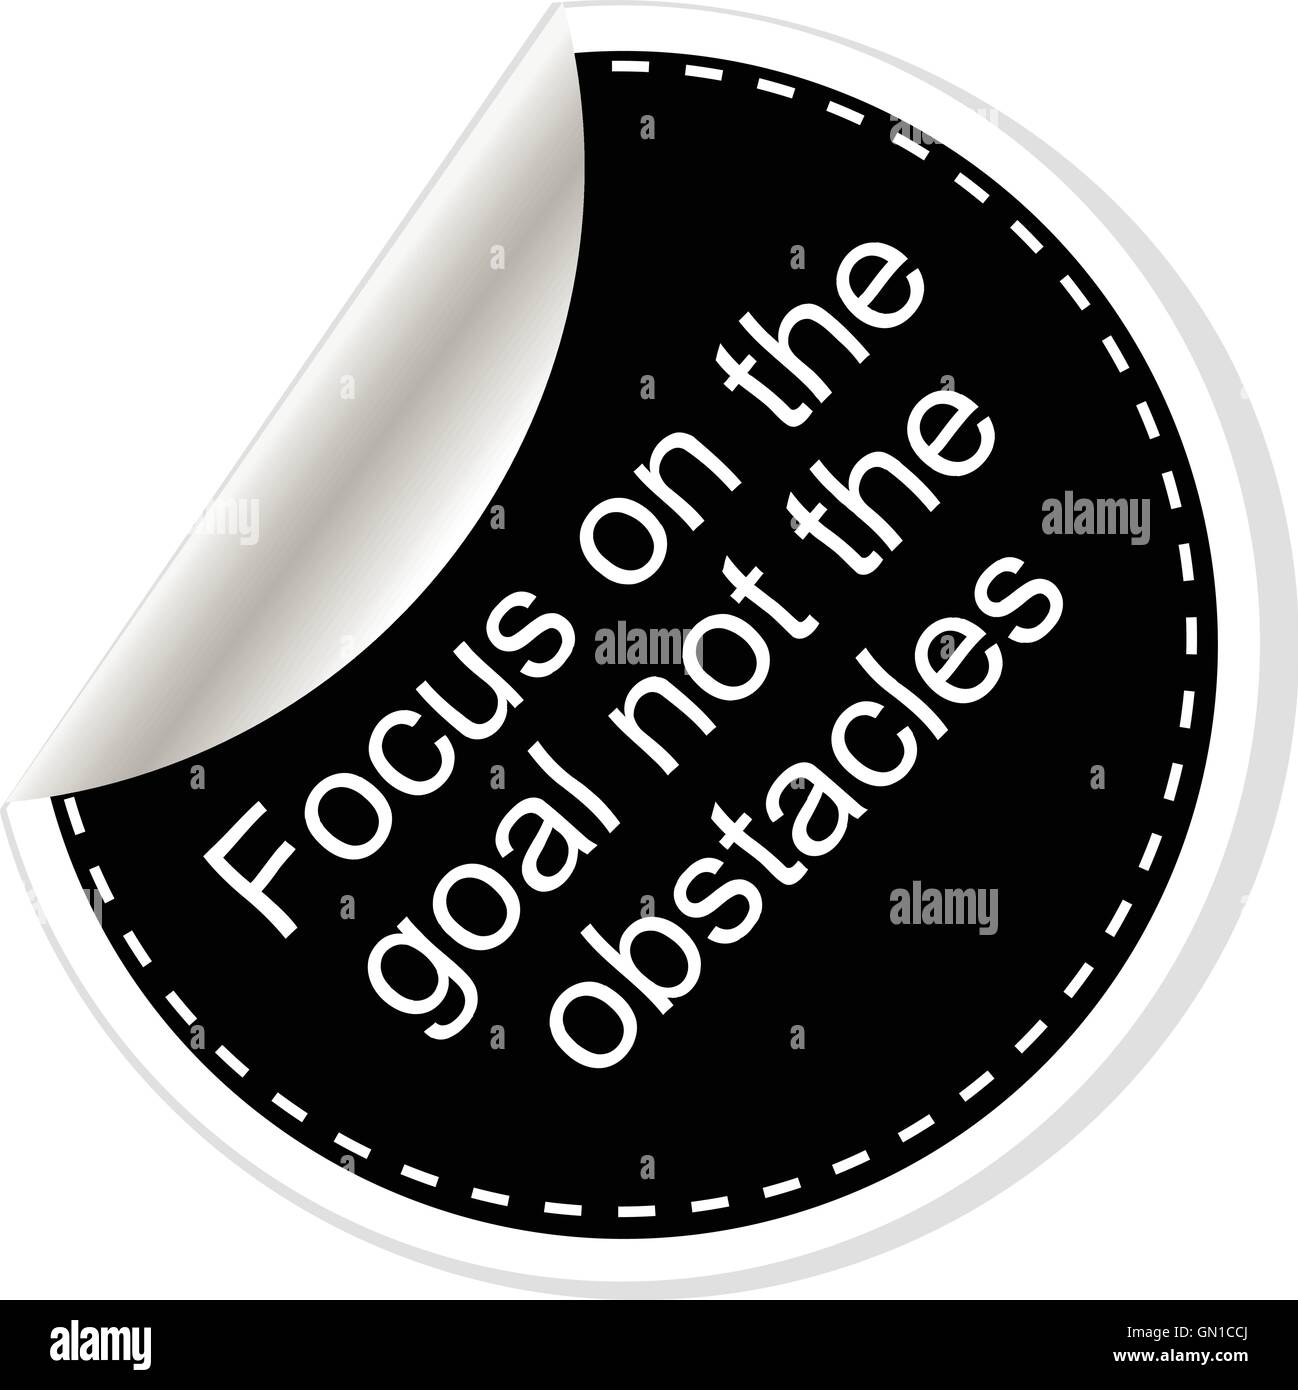 Focus on the goal not the obstacles. Inspirational motivational quote. Simple trendy design. Black and white stickers. - Stock Image